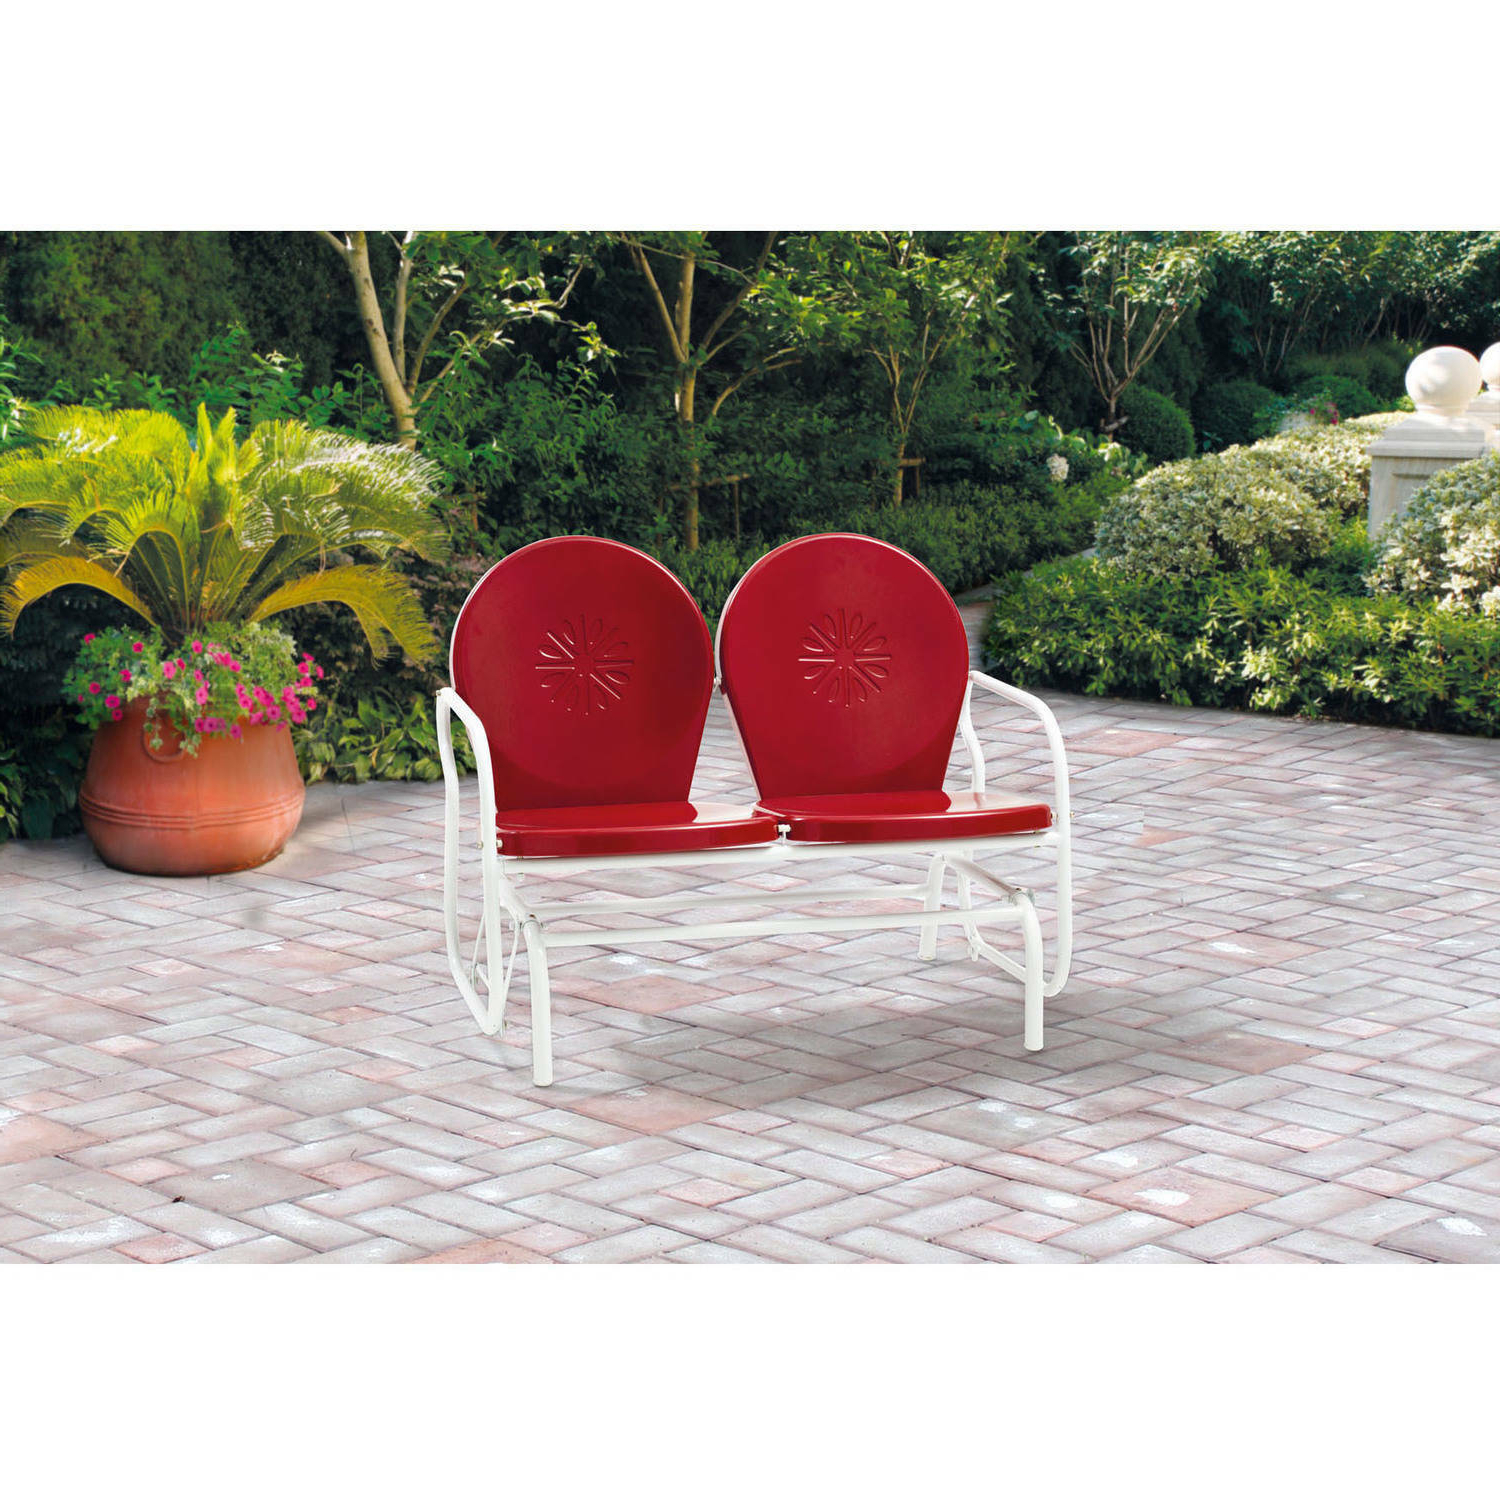 Outdoor Retro Metal Double Glider Benches Inside Most Recent Retro Metal Glider Garden Seating Outdoor Furniture Yard Patio Red Chair Seats (View 6 of 30)